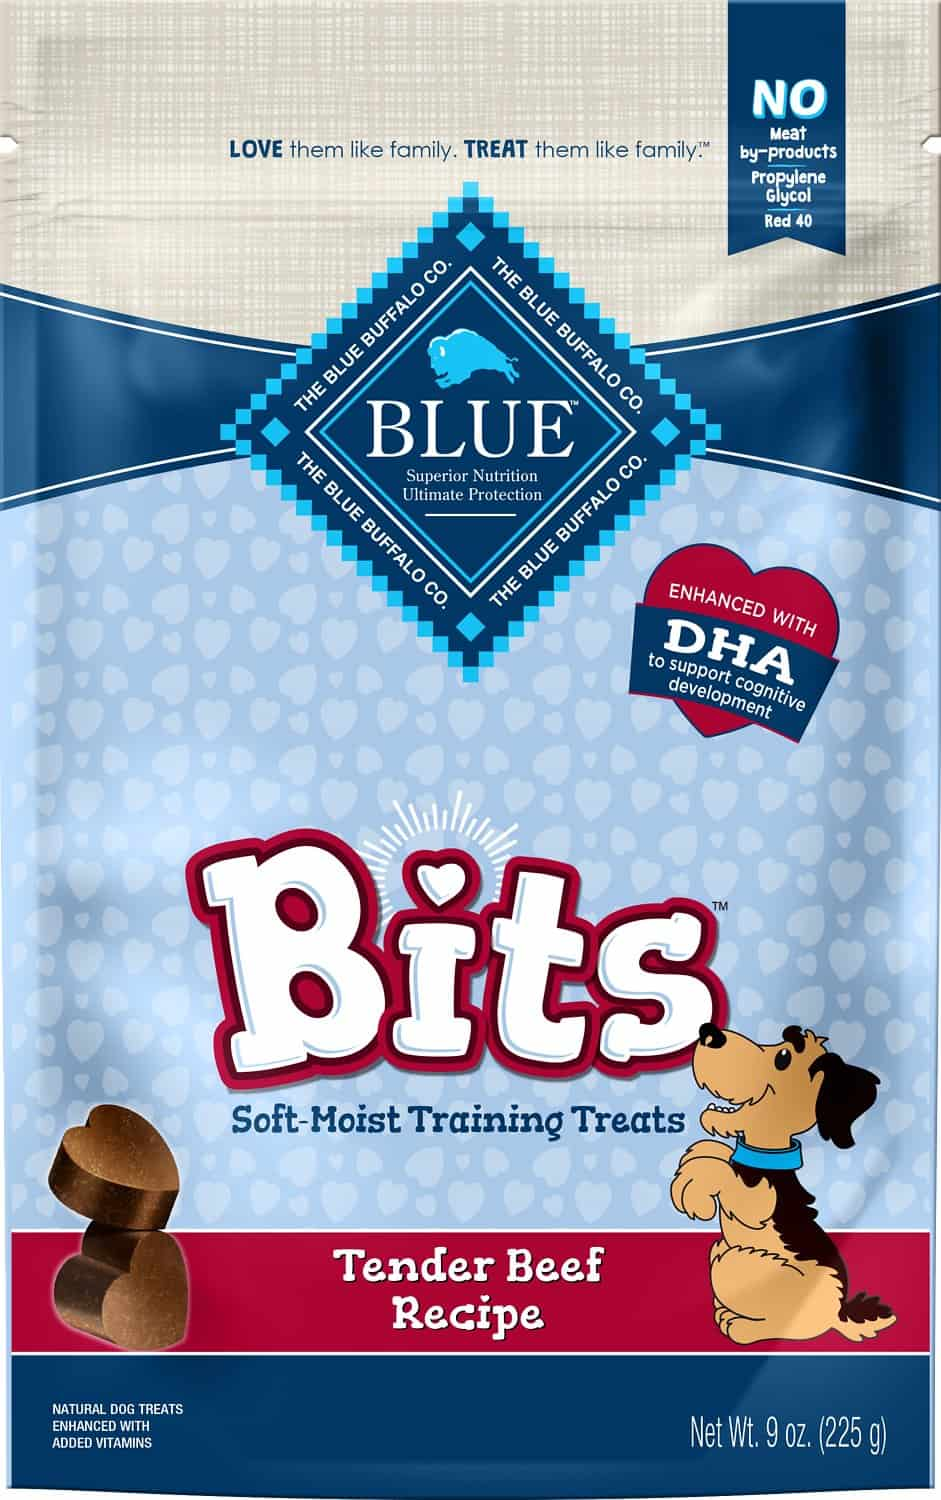 Blue Life Protection Dog Food Review 2021: Best Holistic Dog Food? 21